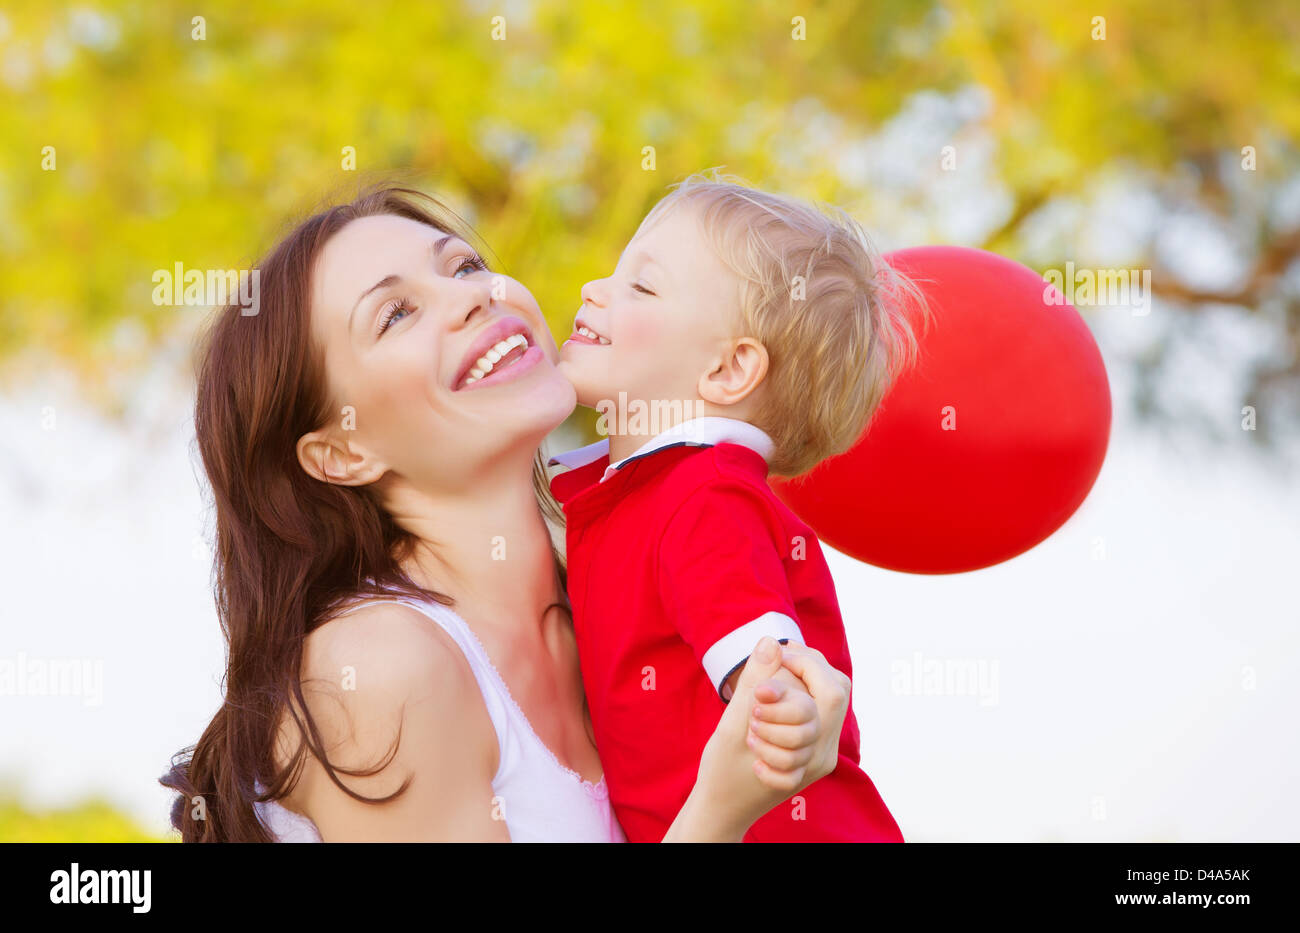 Little boy 6 7 and girl 4 5 kissing stock photo 76842610 alamy image of cute little boy kissing mom beautiful brunette woman with adorable child having fun altavistaventures Images